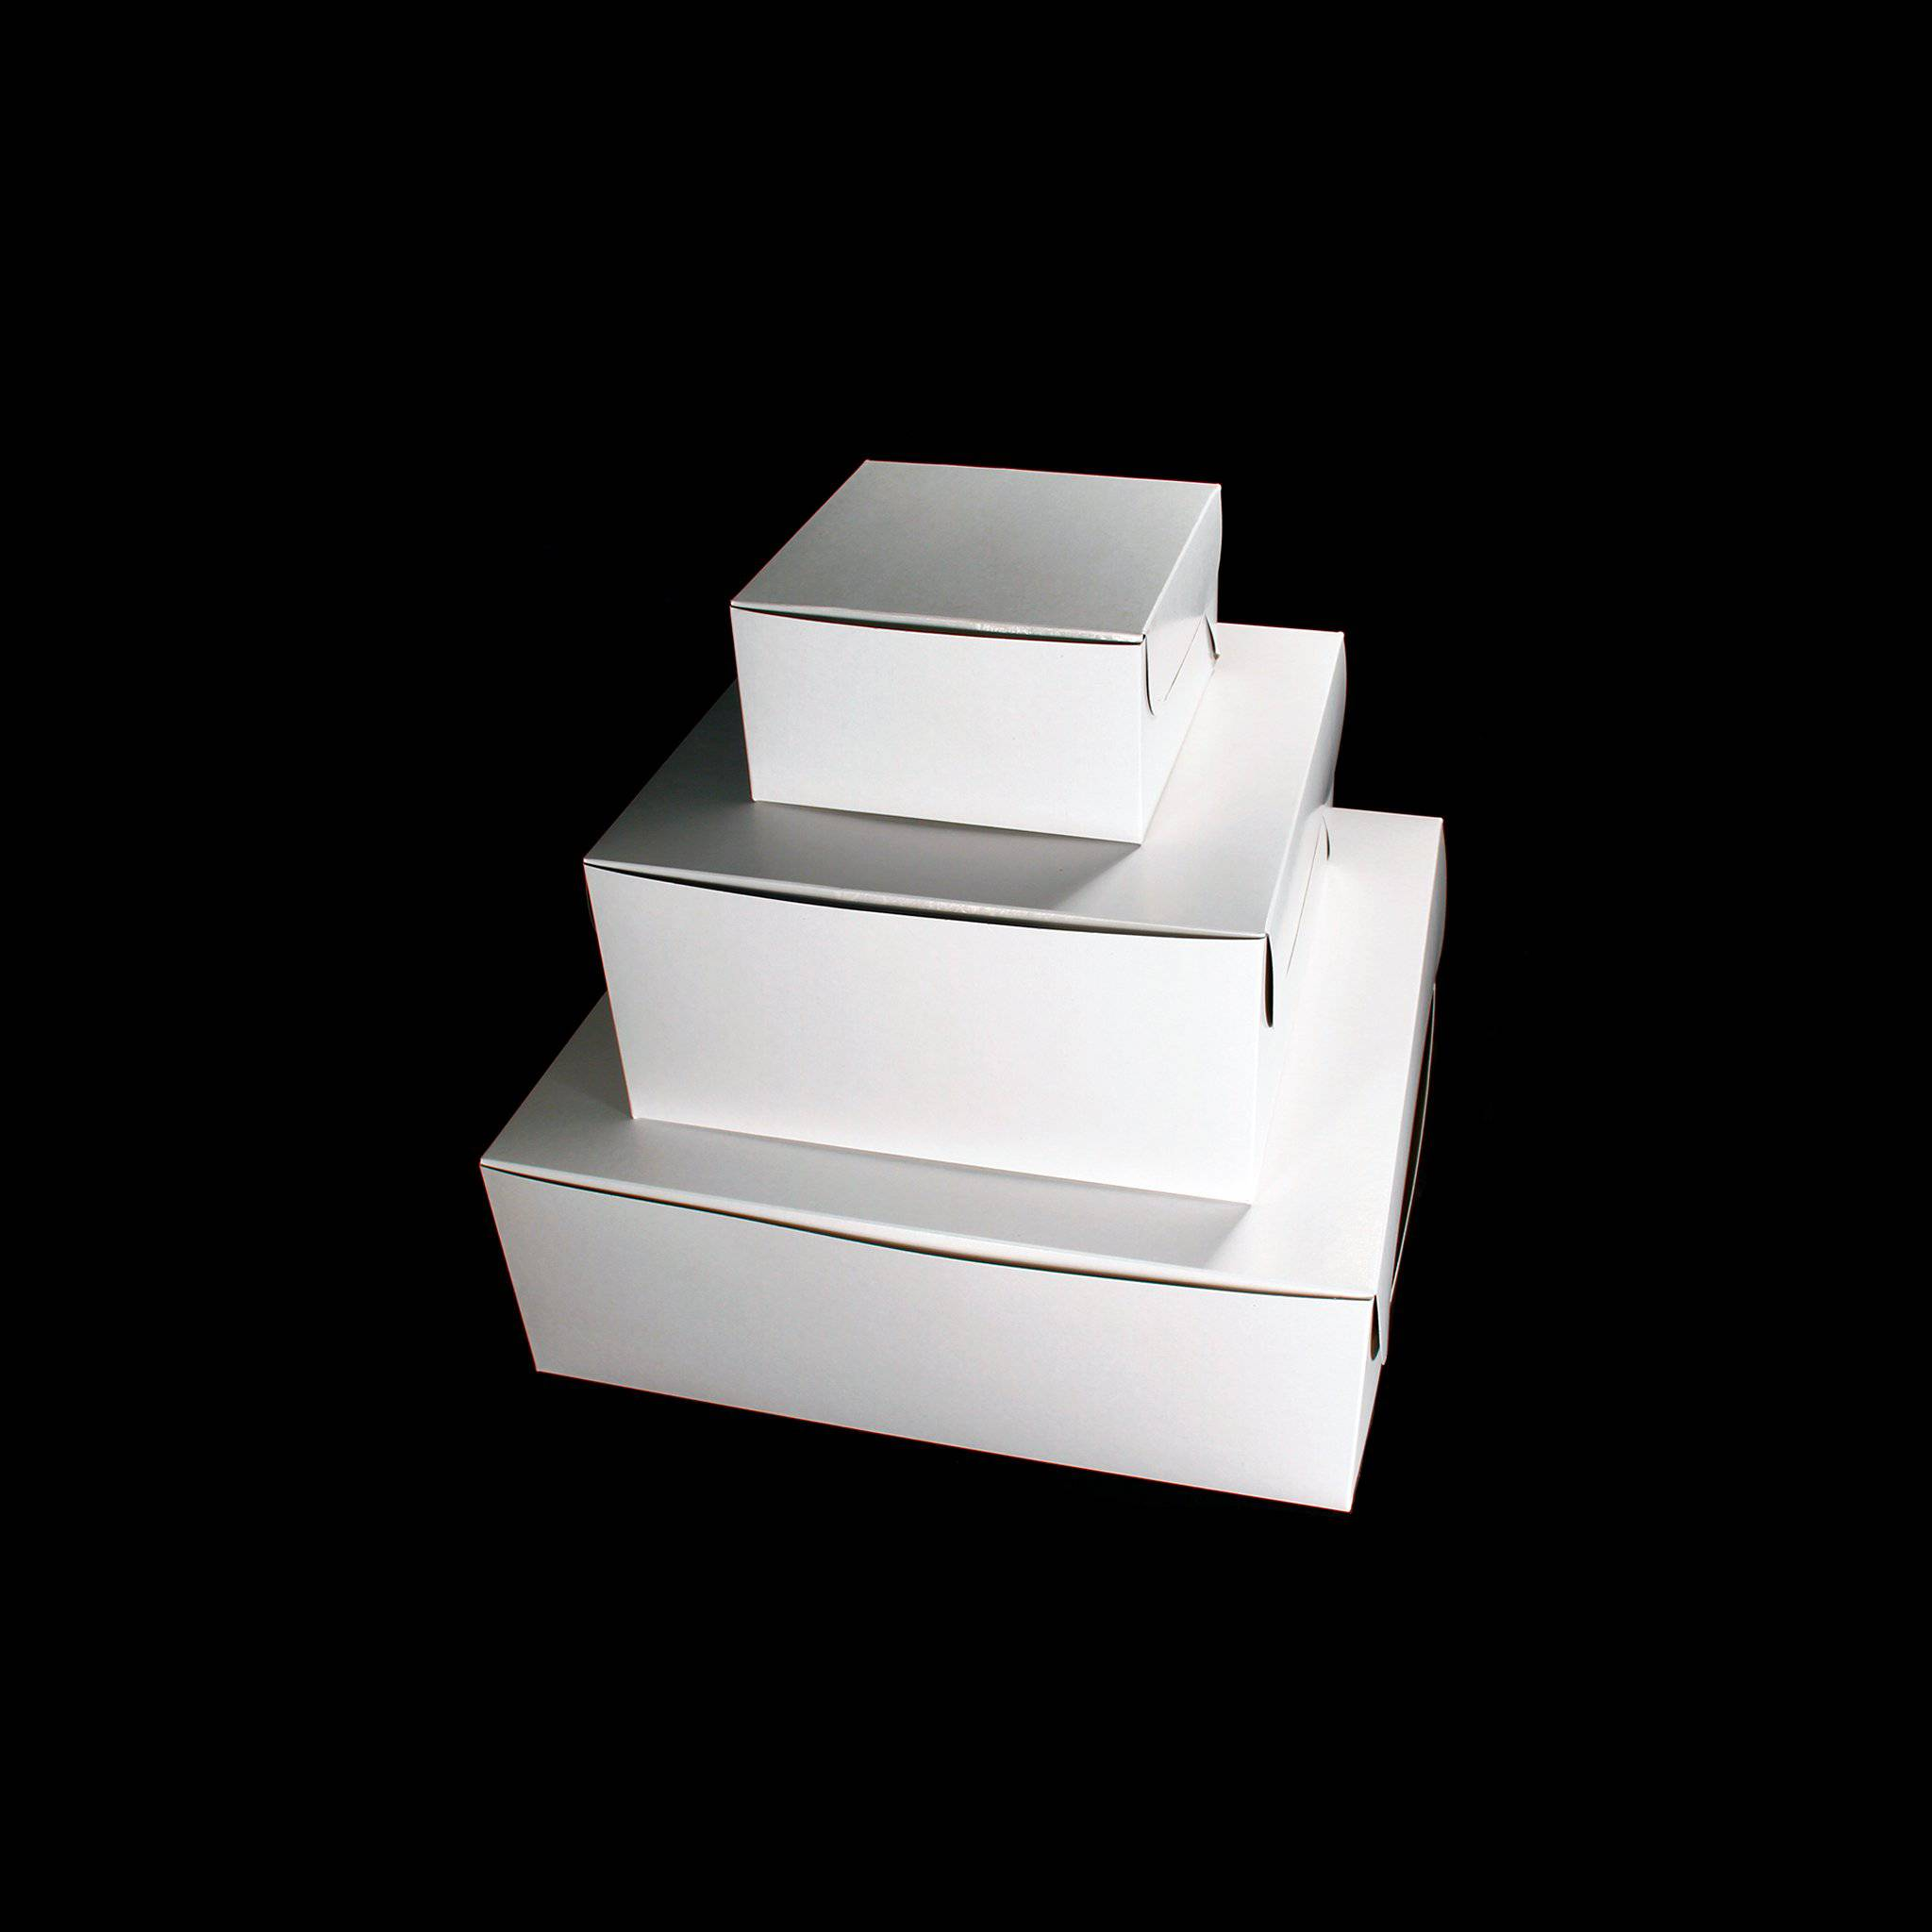 Hotpack | 15x15 CM WHITE CAKE BOX  | 100 Pieces